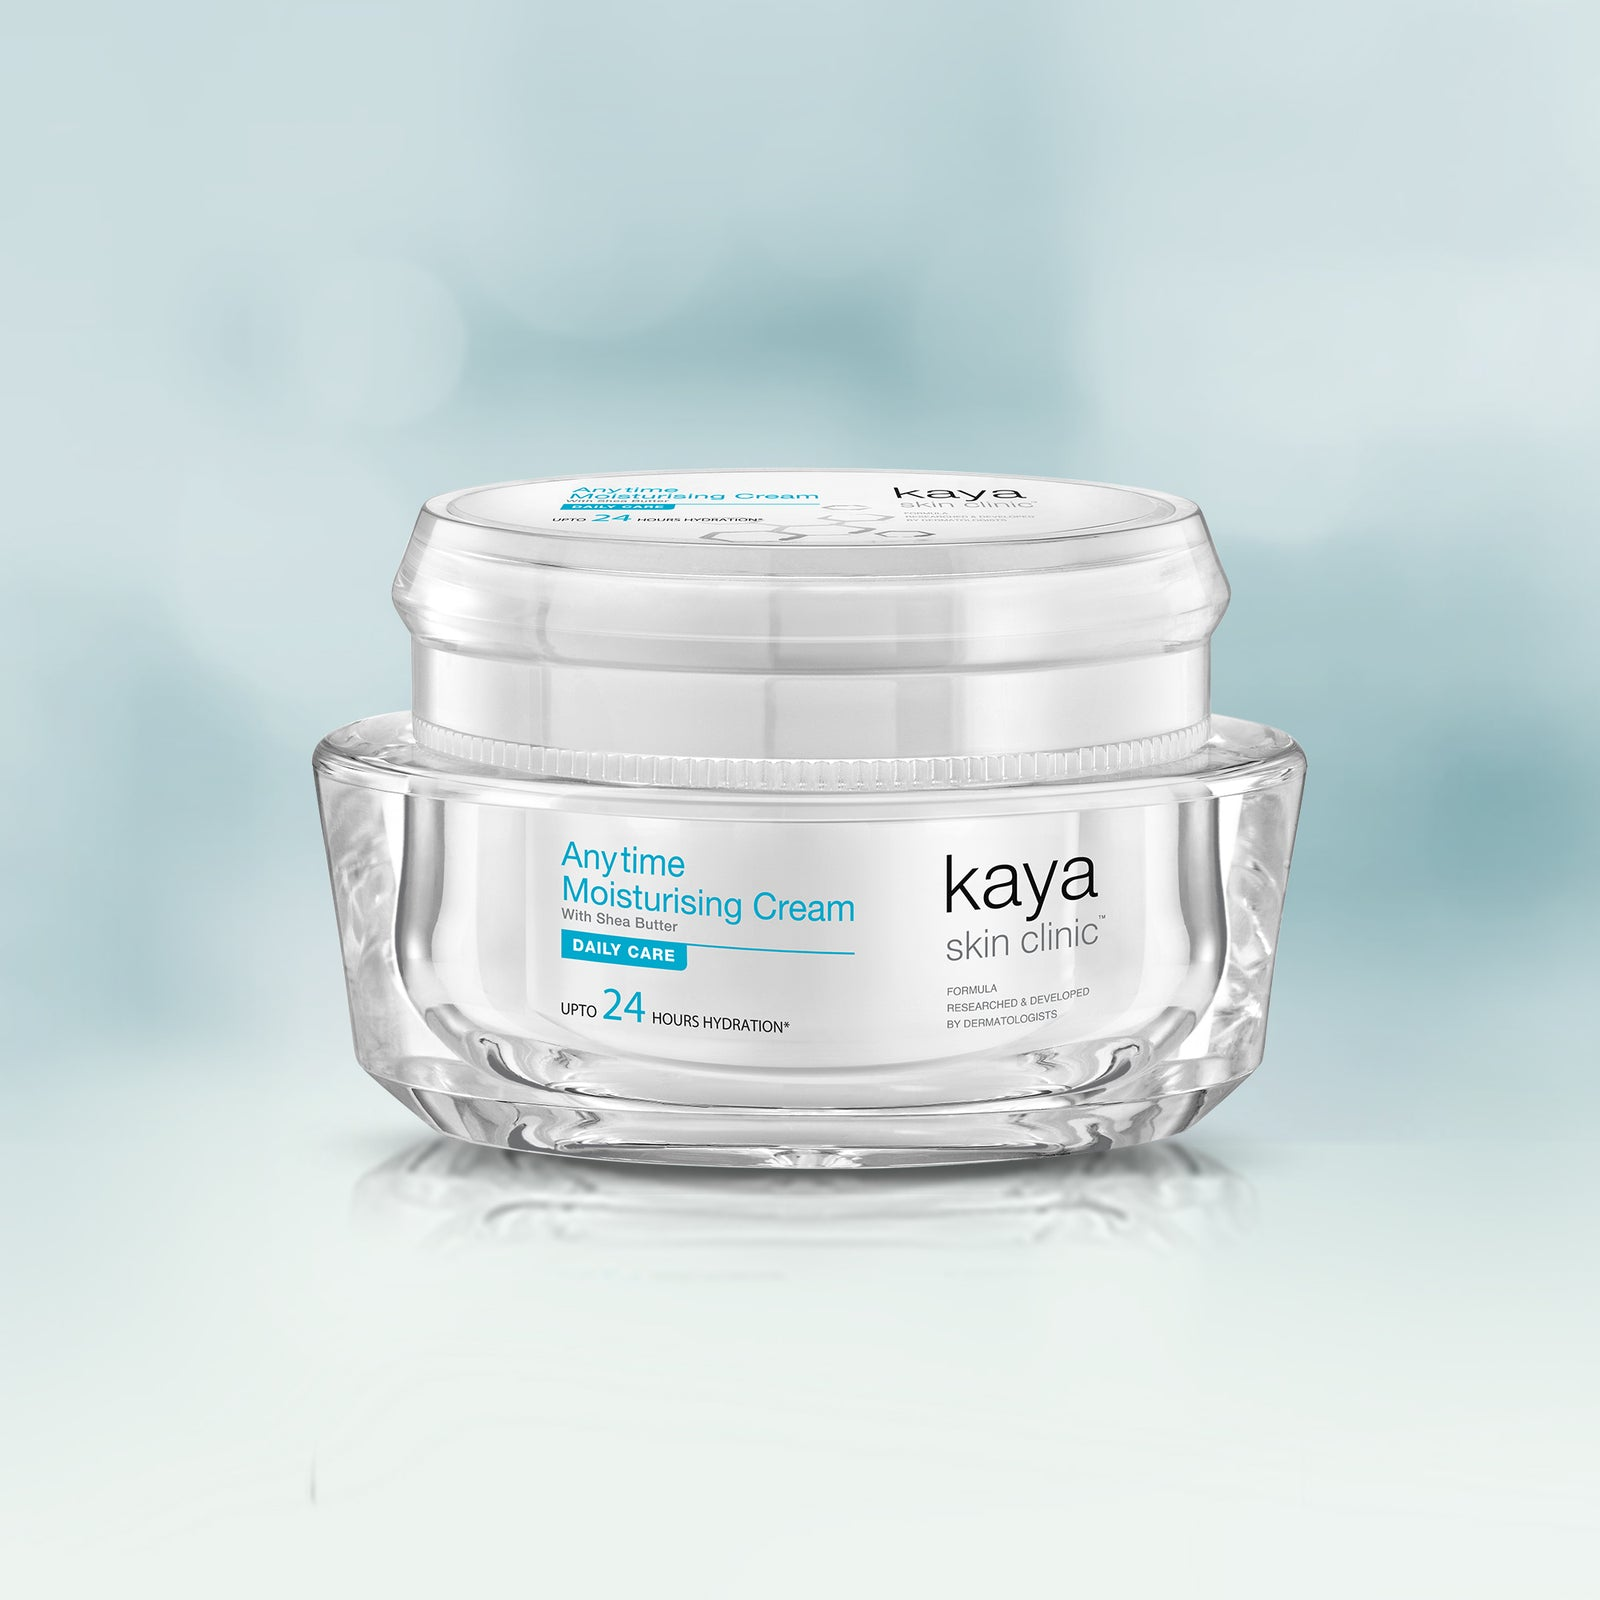 Kaya Anytime Moisturizing Cream